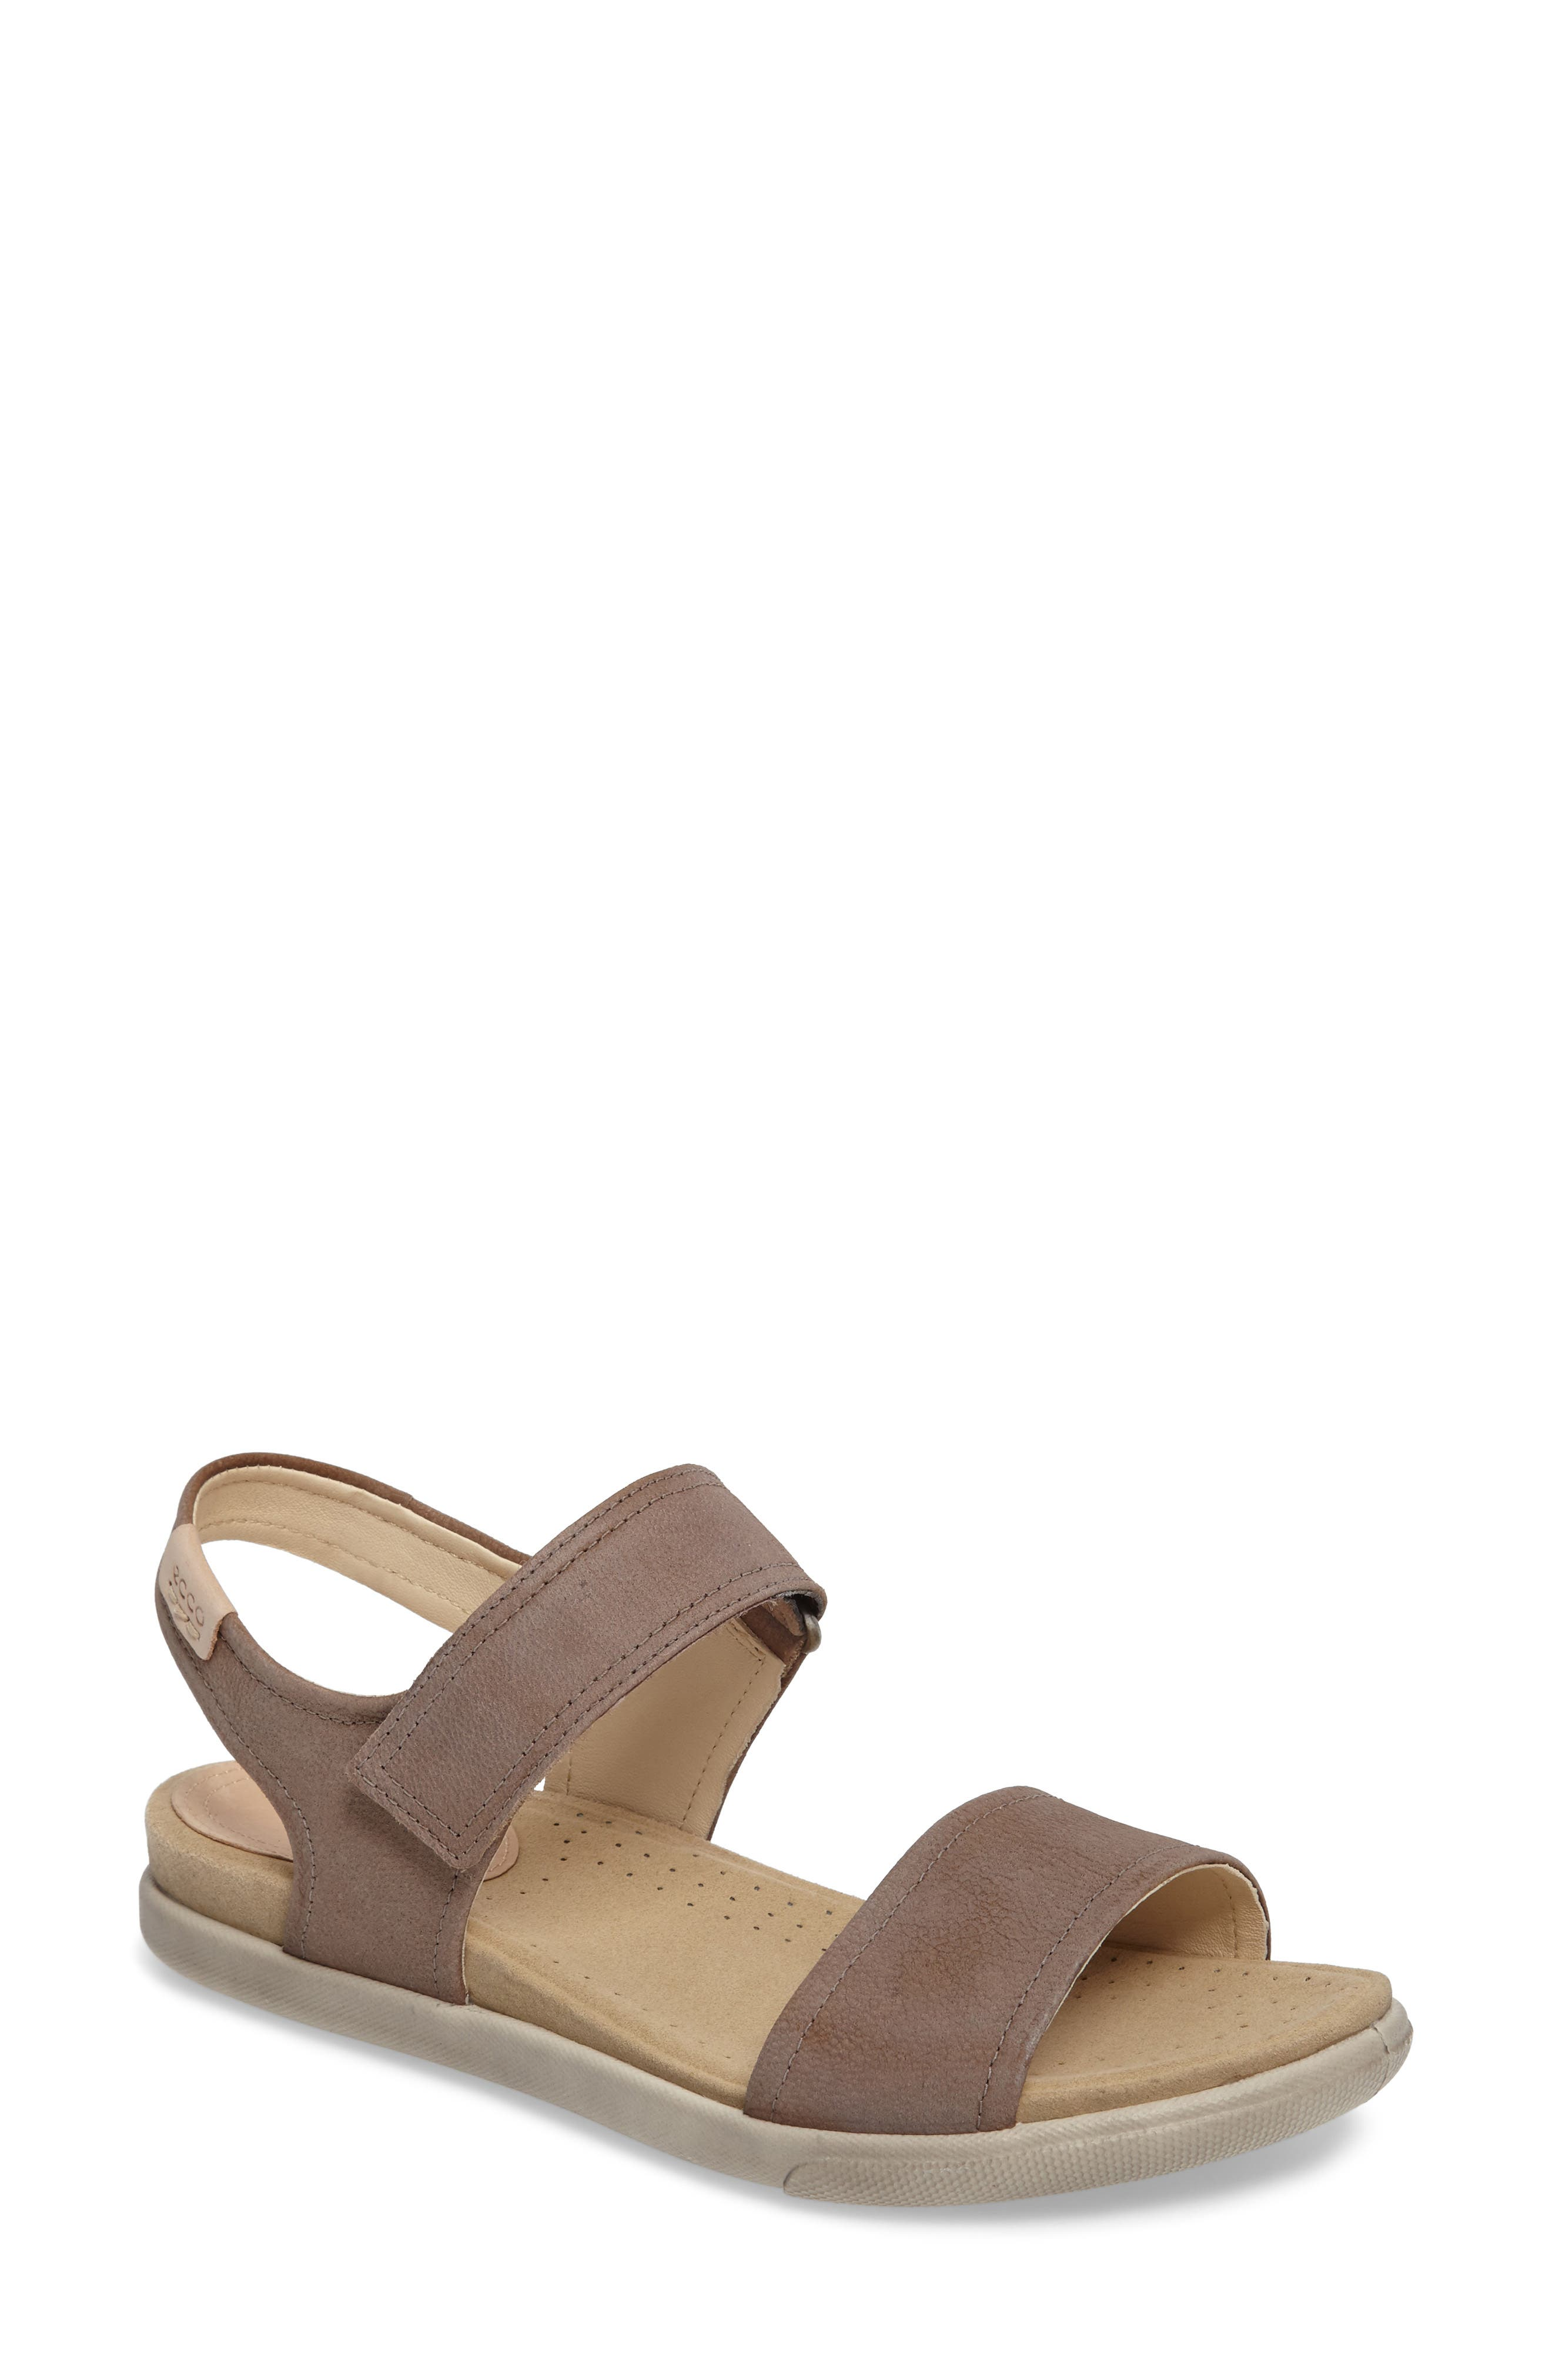 'Damara' Strap Sandal,                             Main thumbnail 1, color,                             Birch Leather